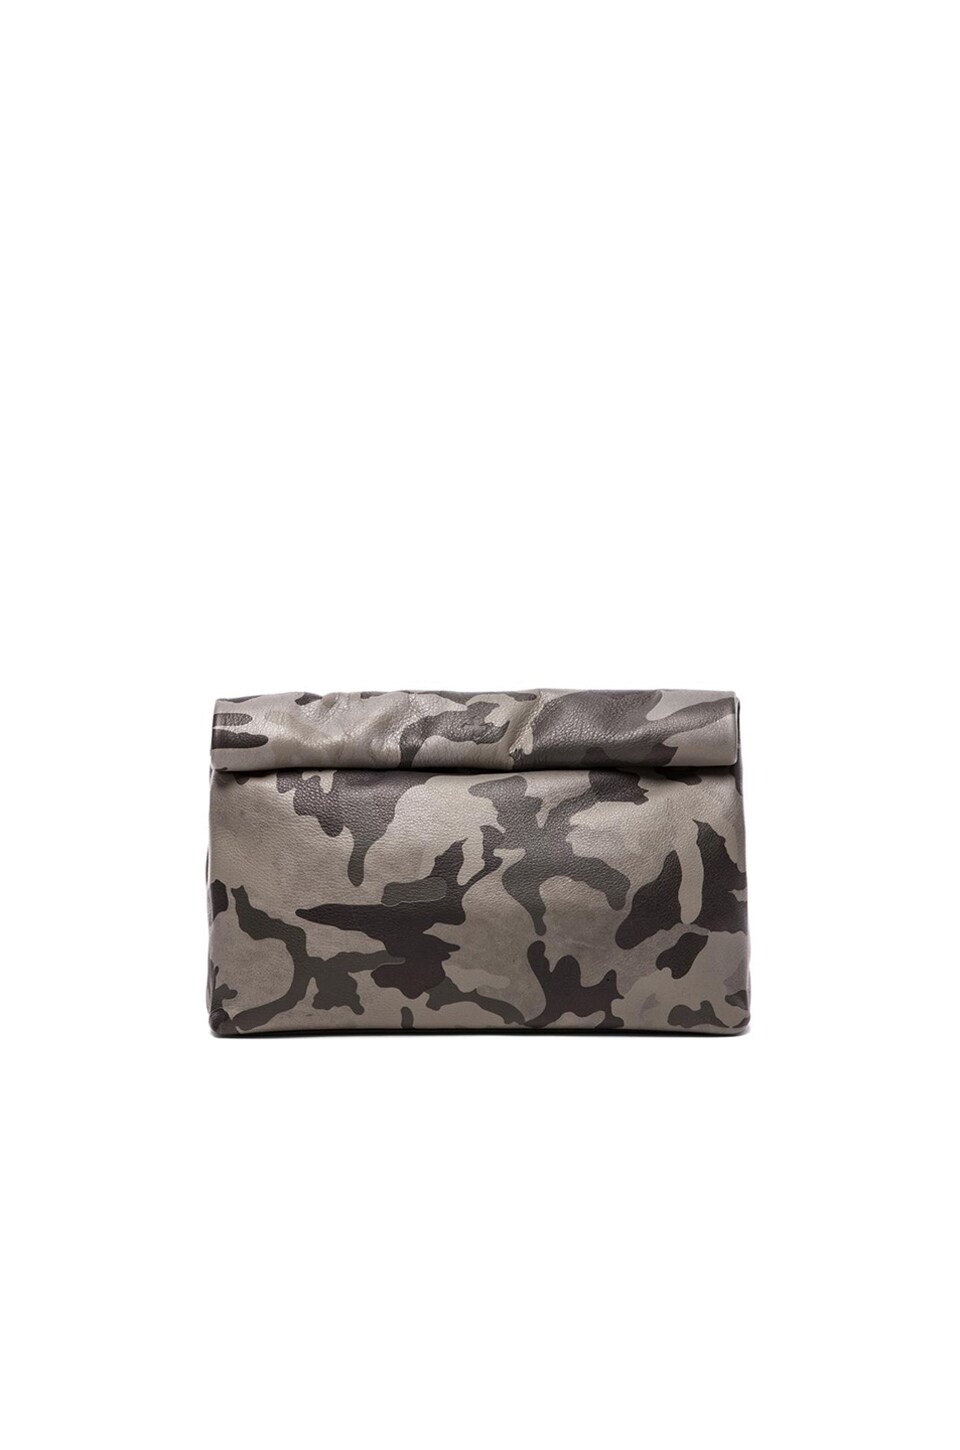 Marie Turnor Lunch Clutch in Camouflage